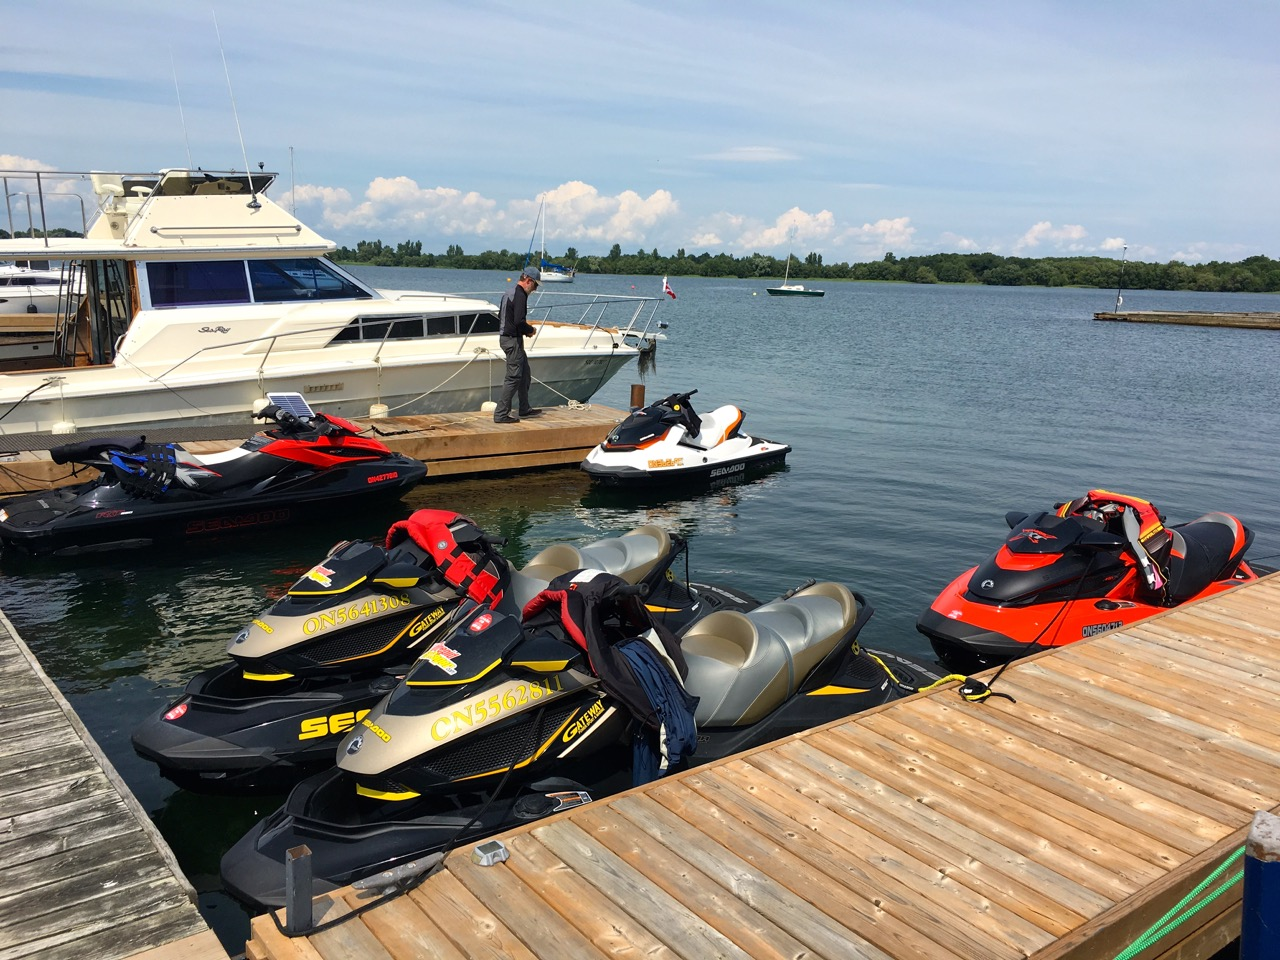 Portable Dock Cleats: Easy Mooring for Sea Doo Tours - Intrepid Cottager